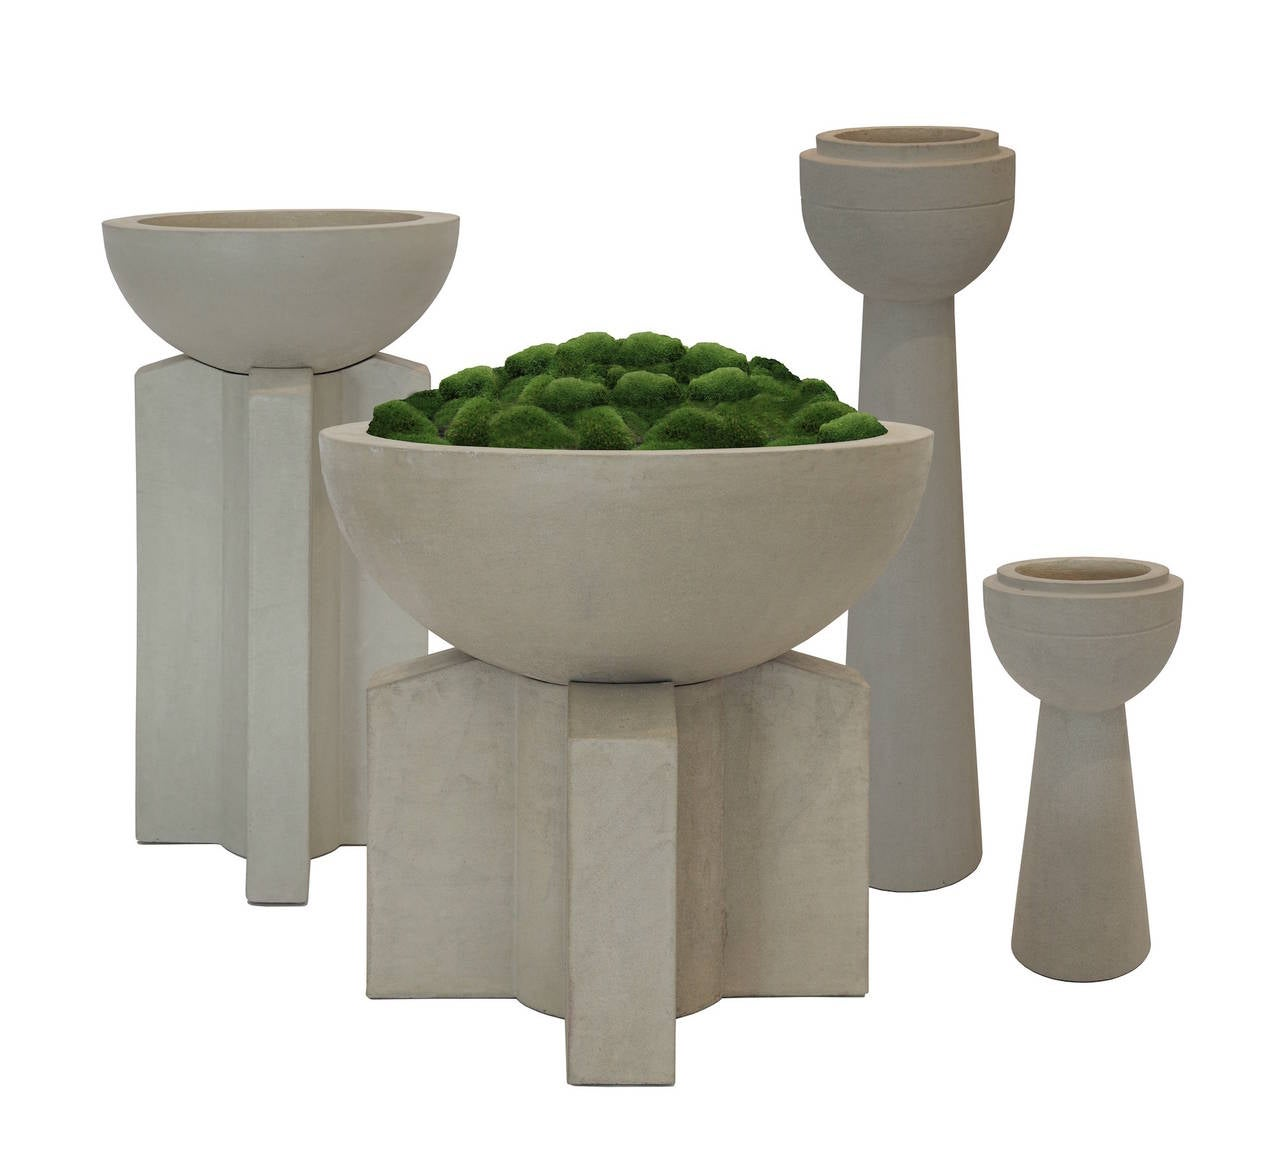 Californian iii cast concrete planter for sale at 1stdibs - Casting concrete planters ...